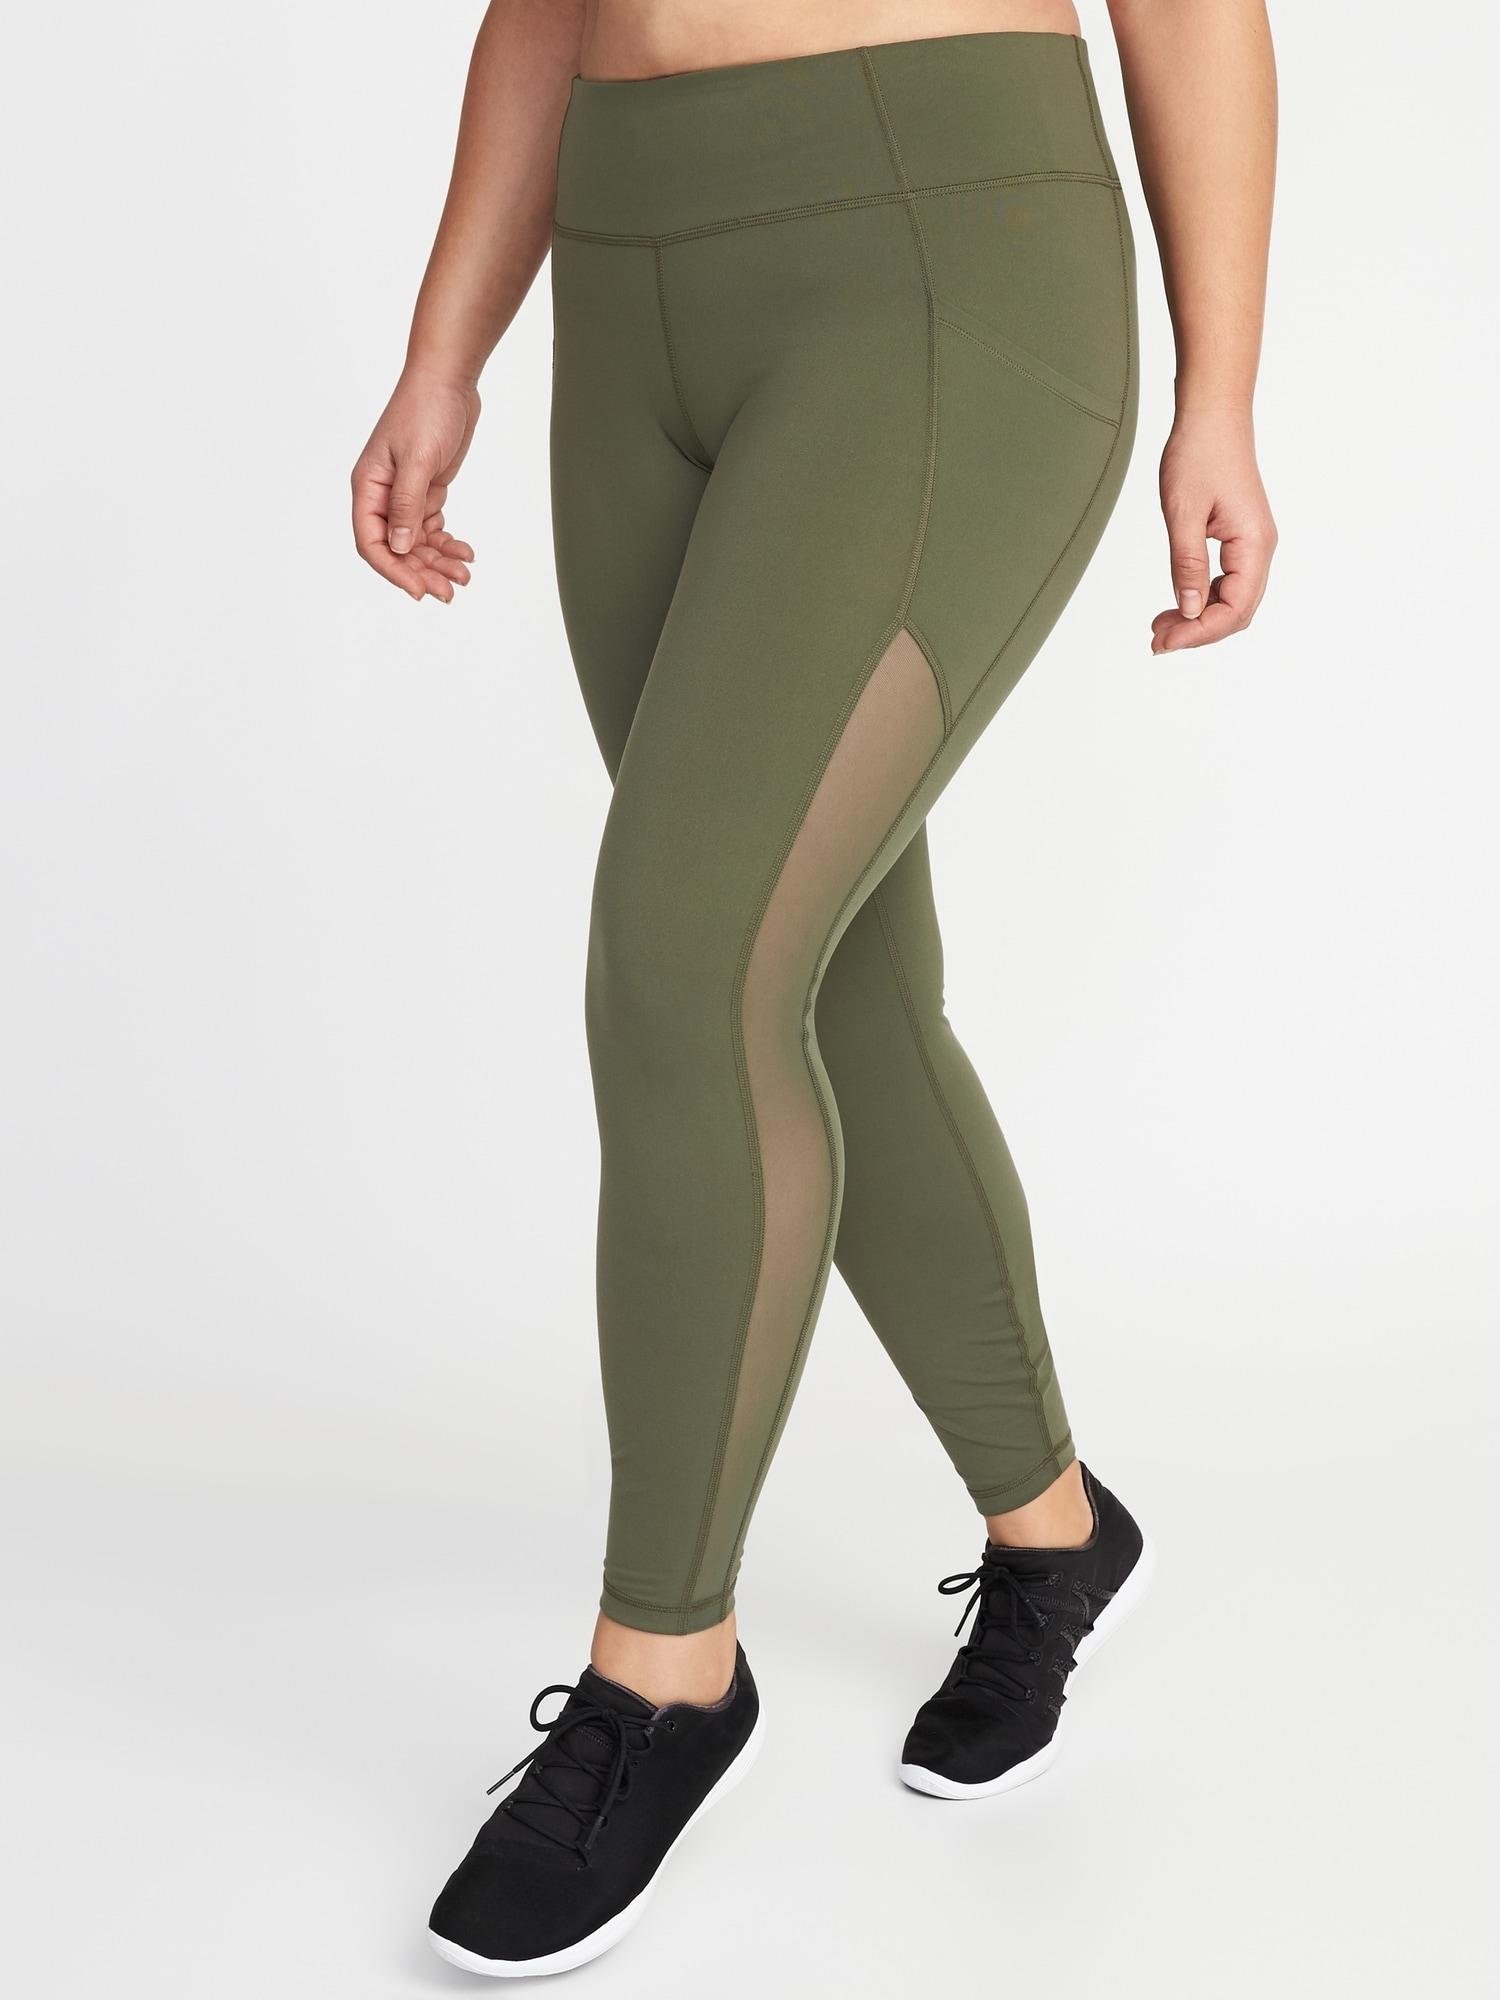 d9443271872eca Lyst - Old Navy High-rise Elevate Compression Plus-size Pocket ...